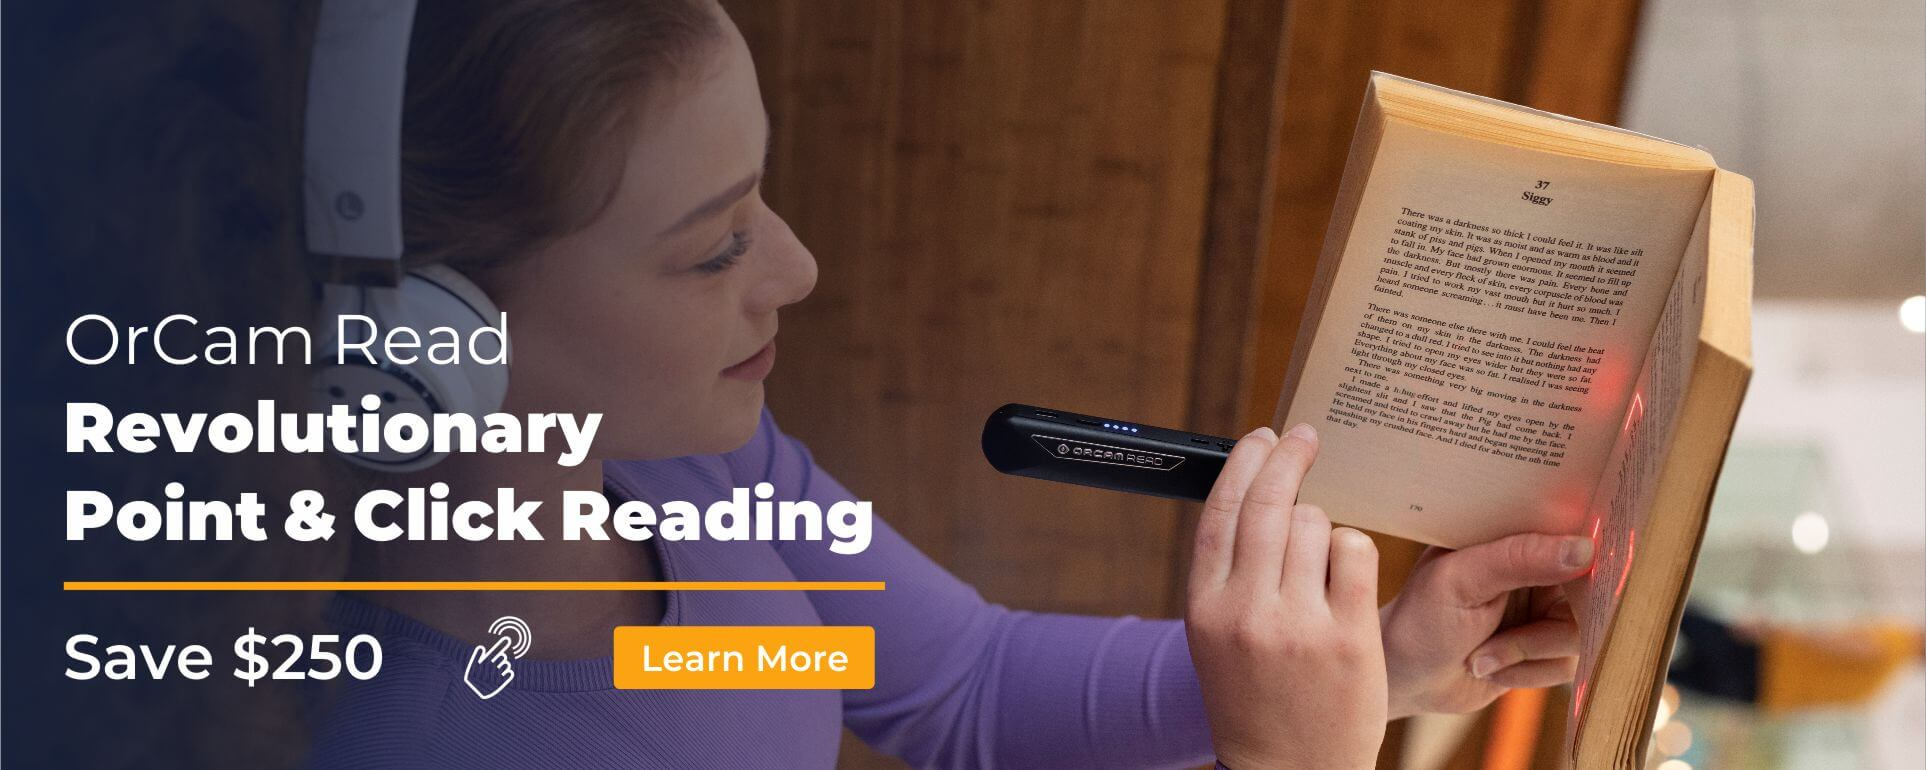 Back to school is around the corner. Same $250 on OrCam Read Classic and OrCam Read Smart essential devices. Young female holding an OrCam Read while reading a book.